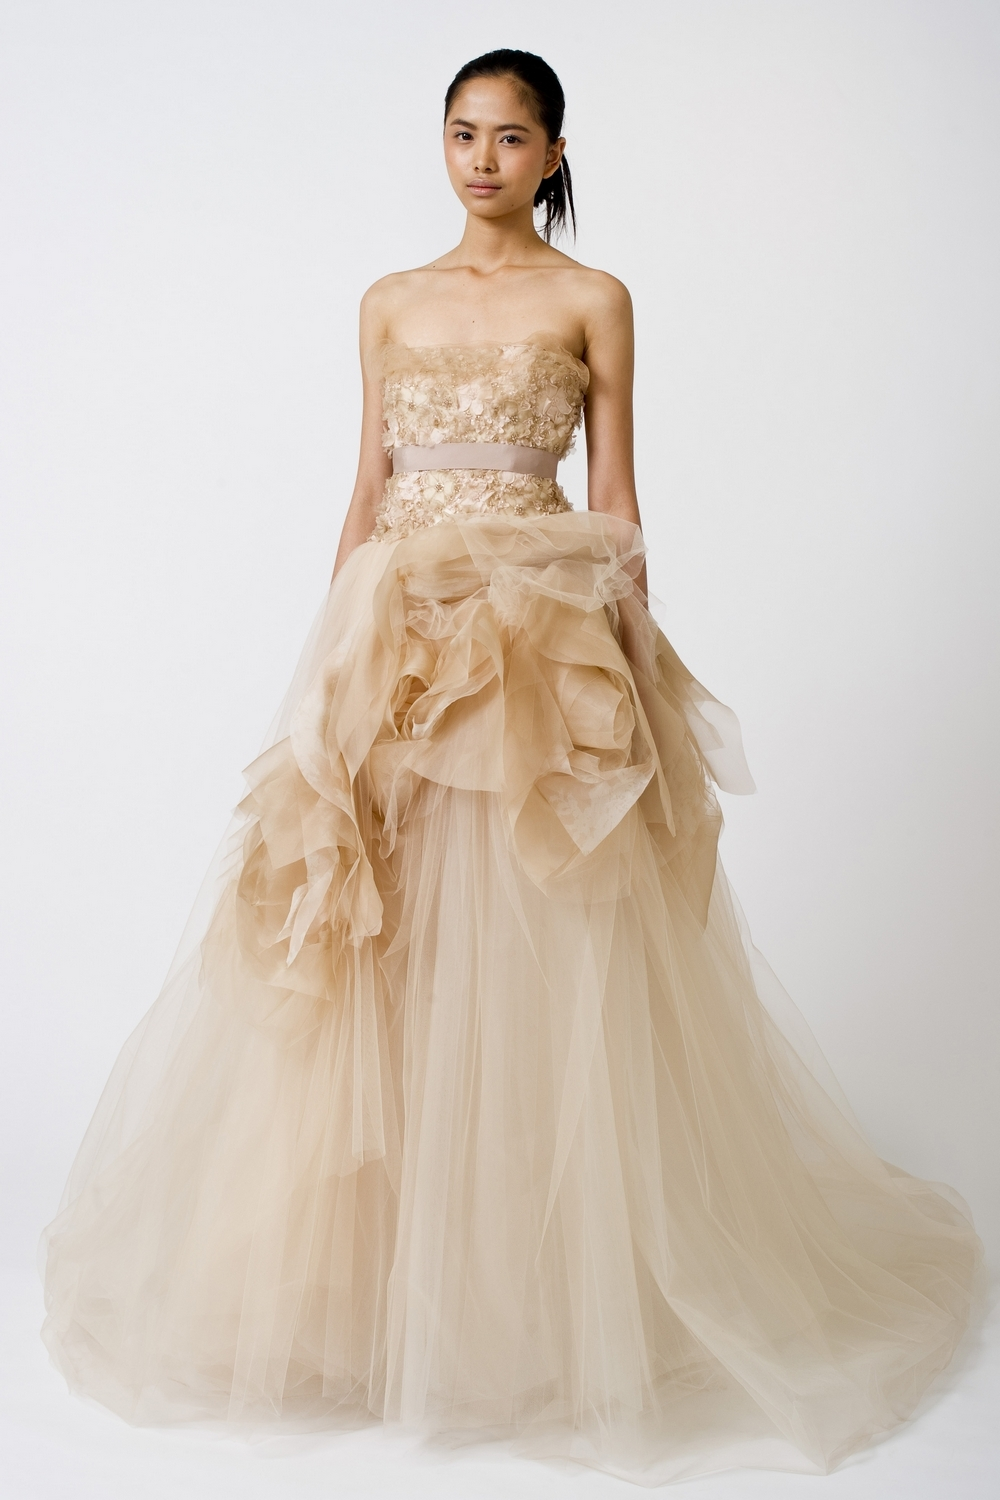 8-spring-2011-vera-wang-wedding-dress-blush-nude-hue-tulle.full